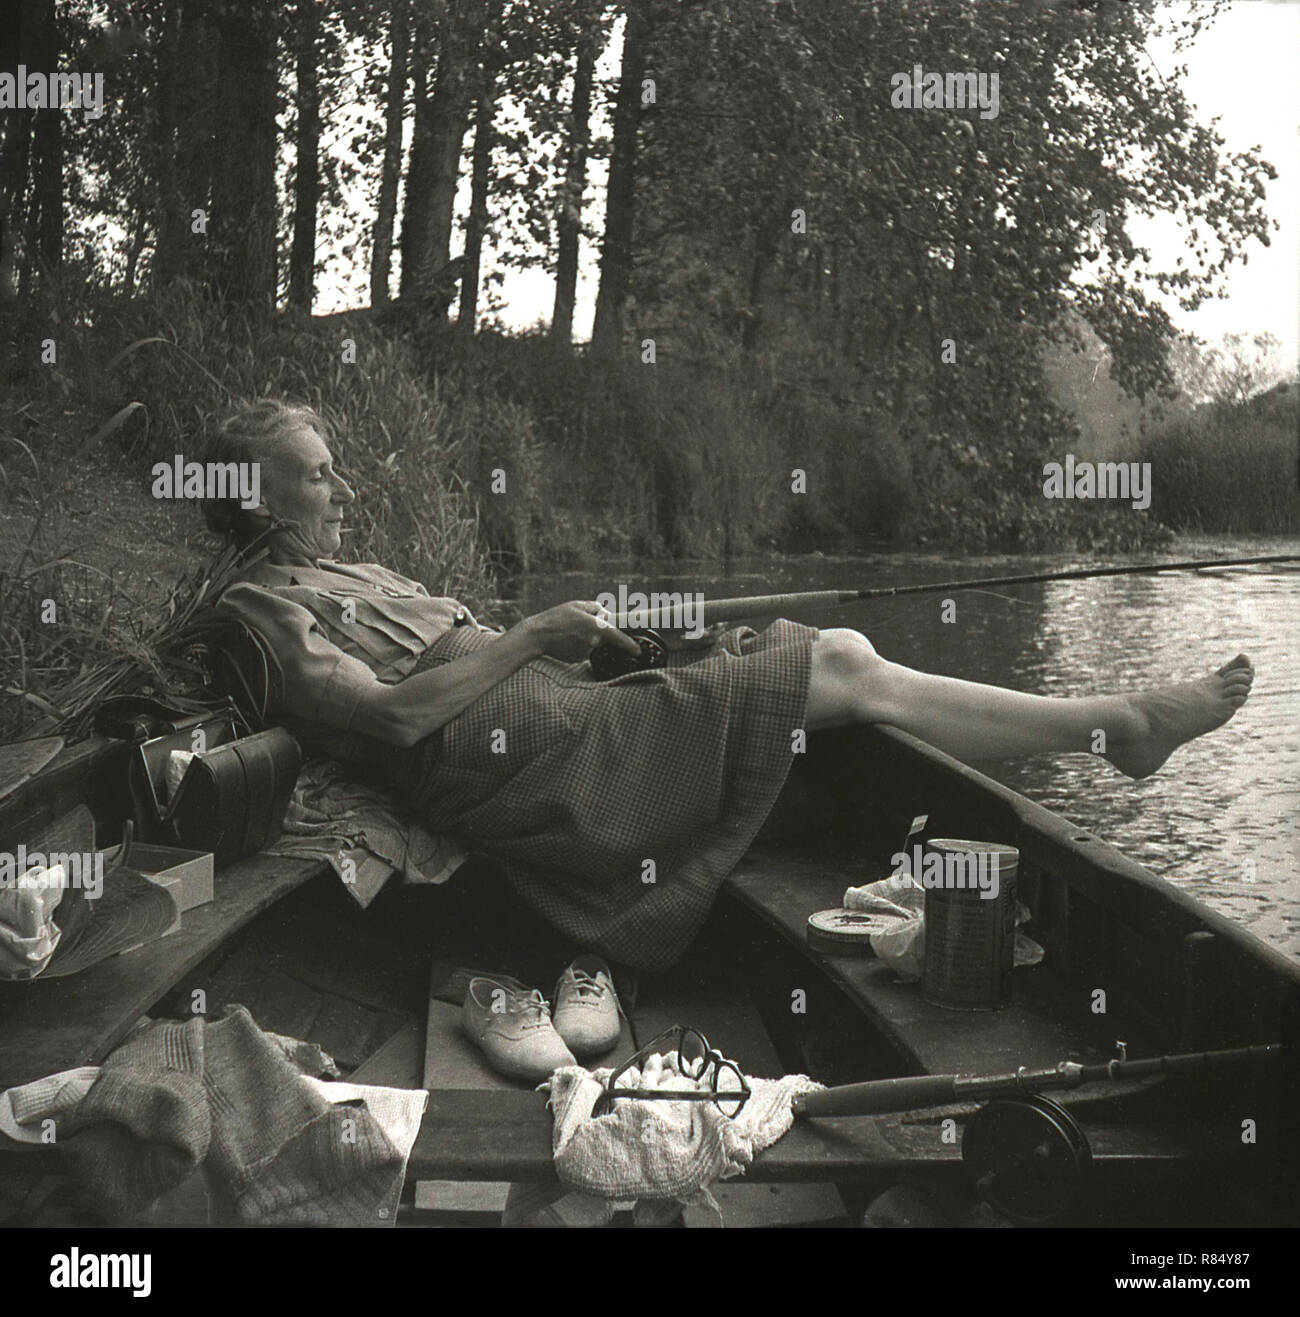 1950s, Elderly lady in barefeet lying back in a rowing boat at a river's edge fly fishing, England, UK. - Stock Image